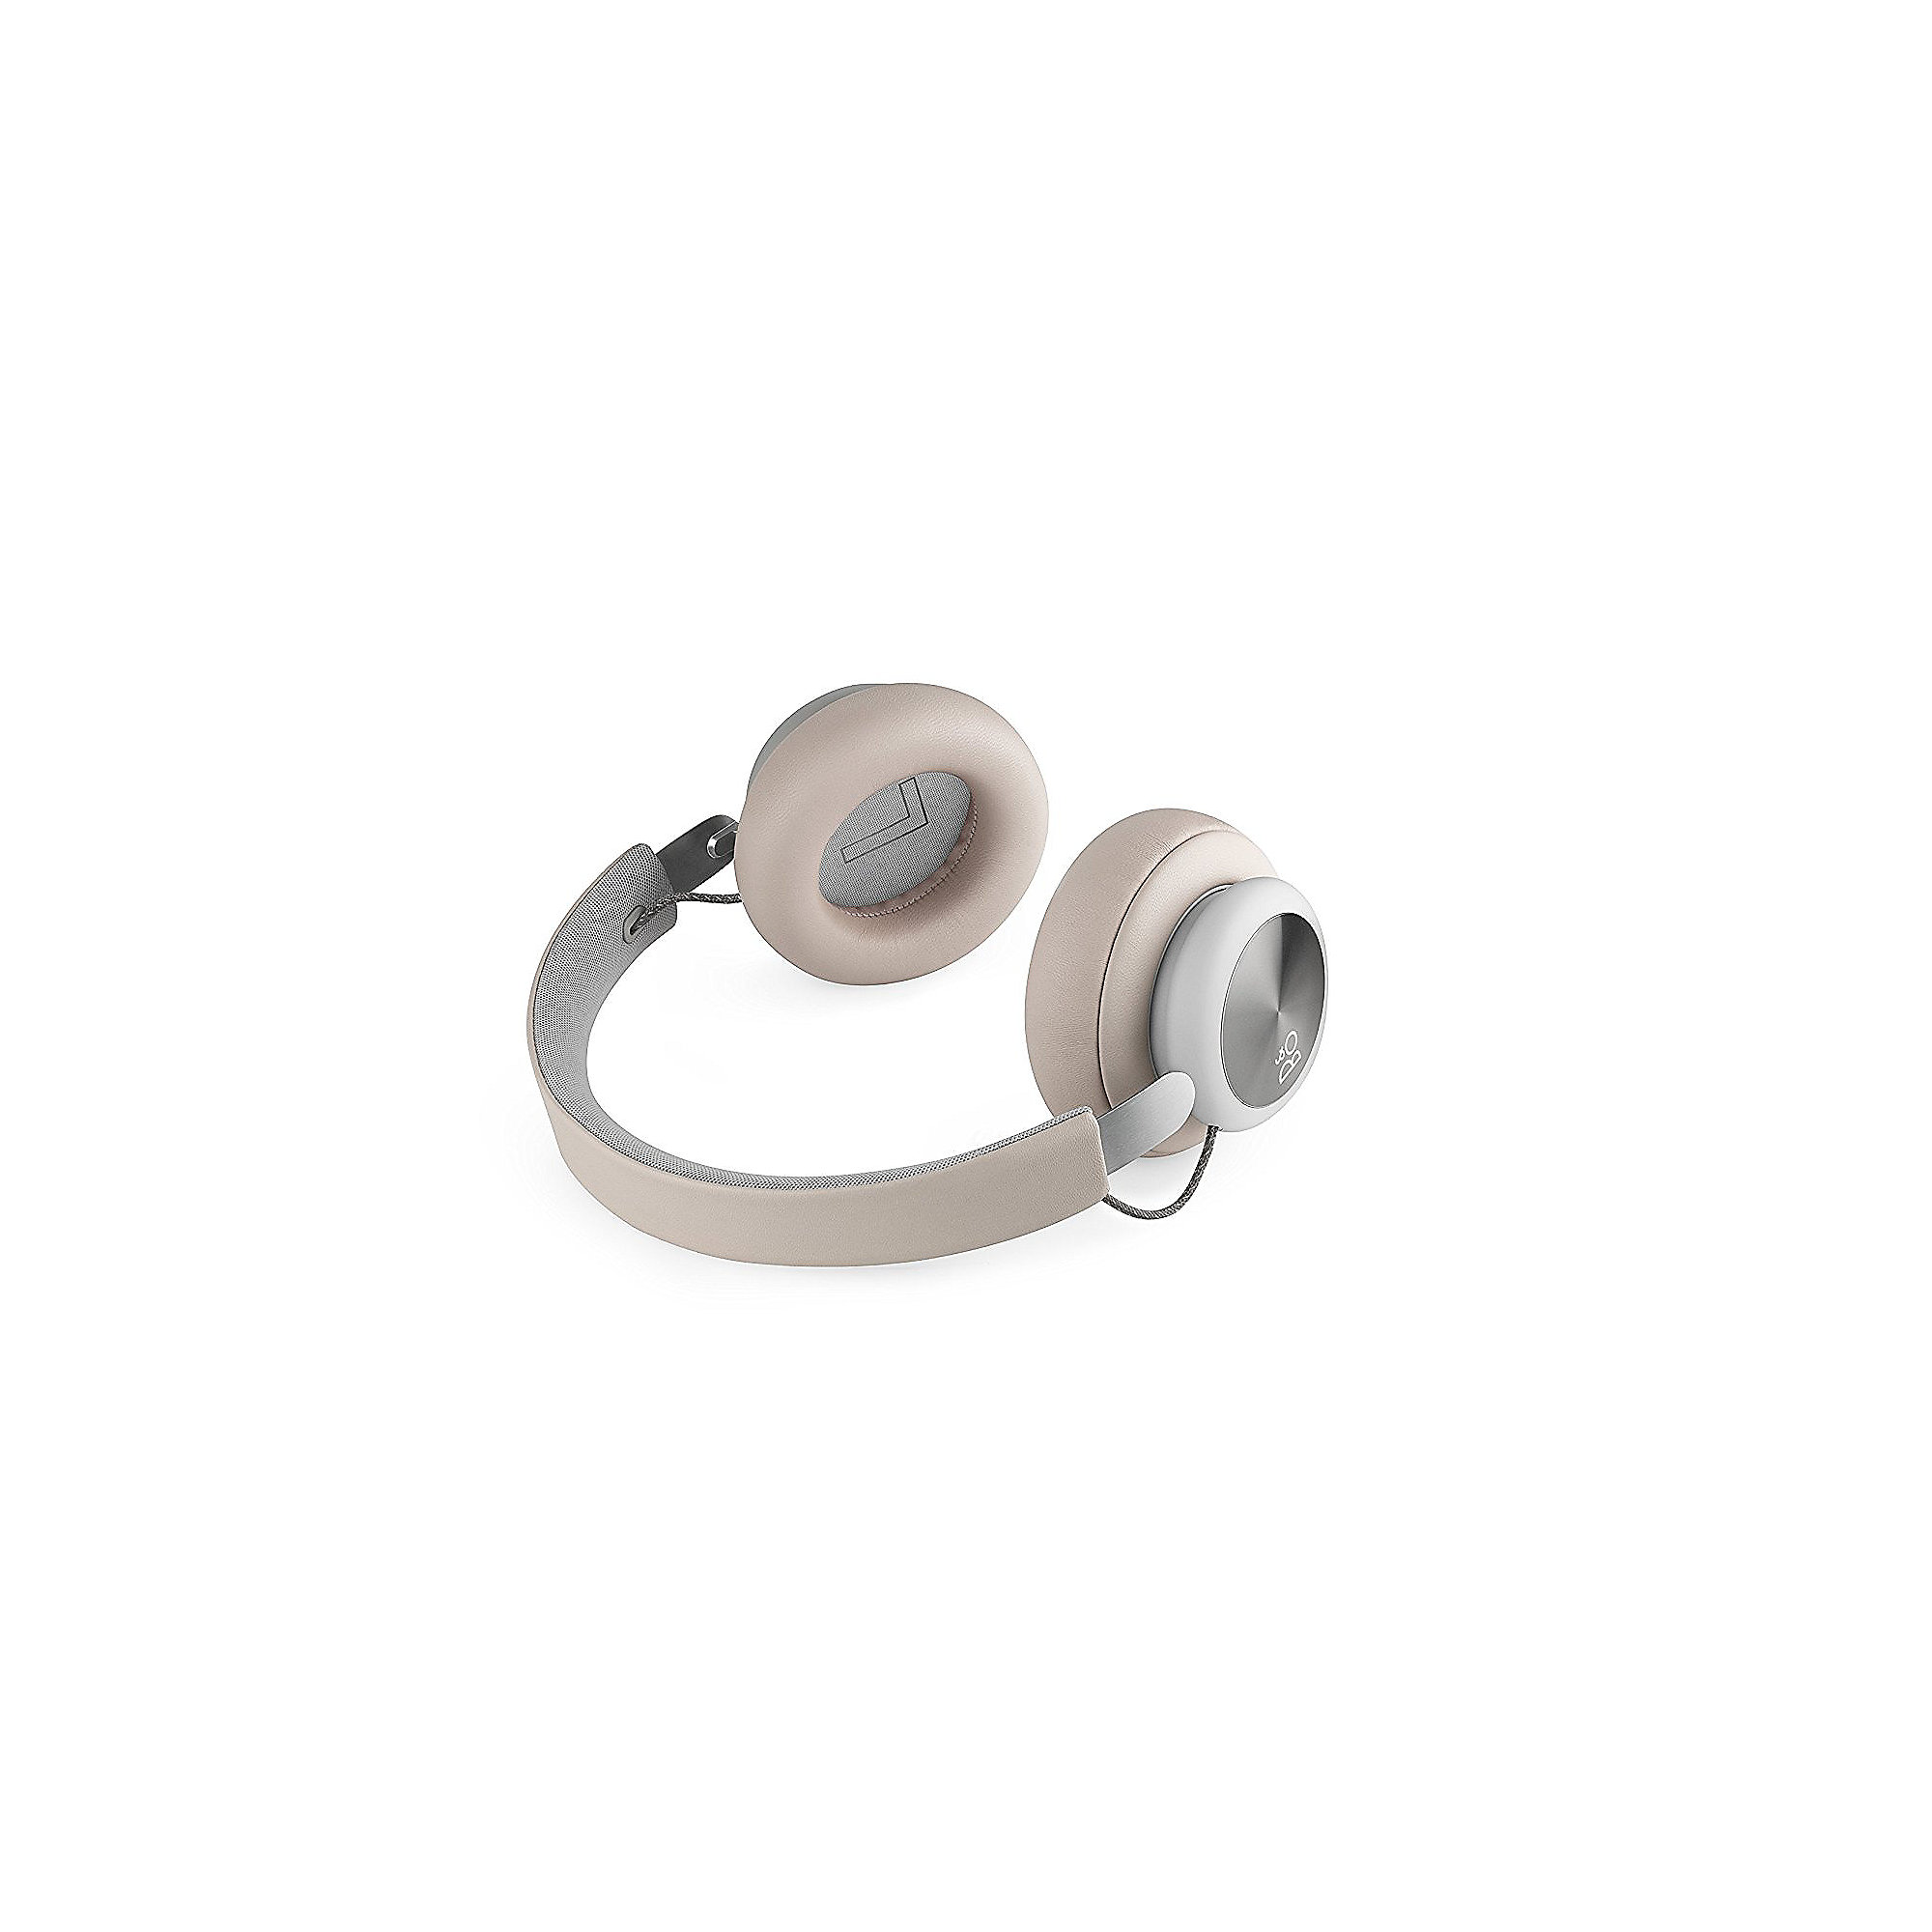 .B&O PLAY BeoPlay H4 Over Ear Bluetooth-Kopfhörer sand-grau